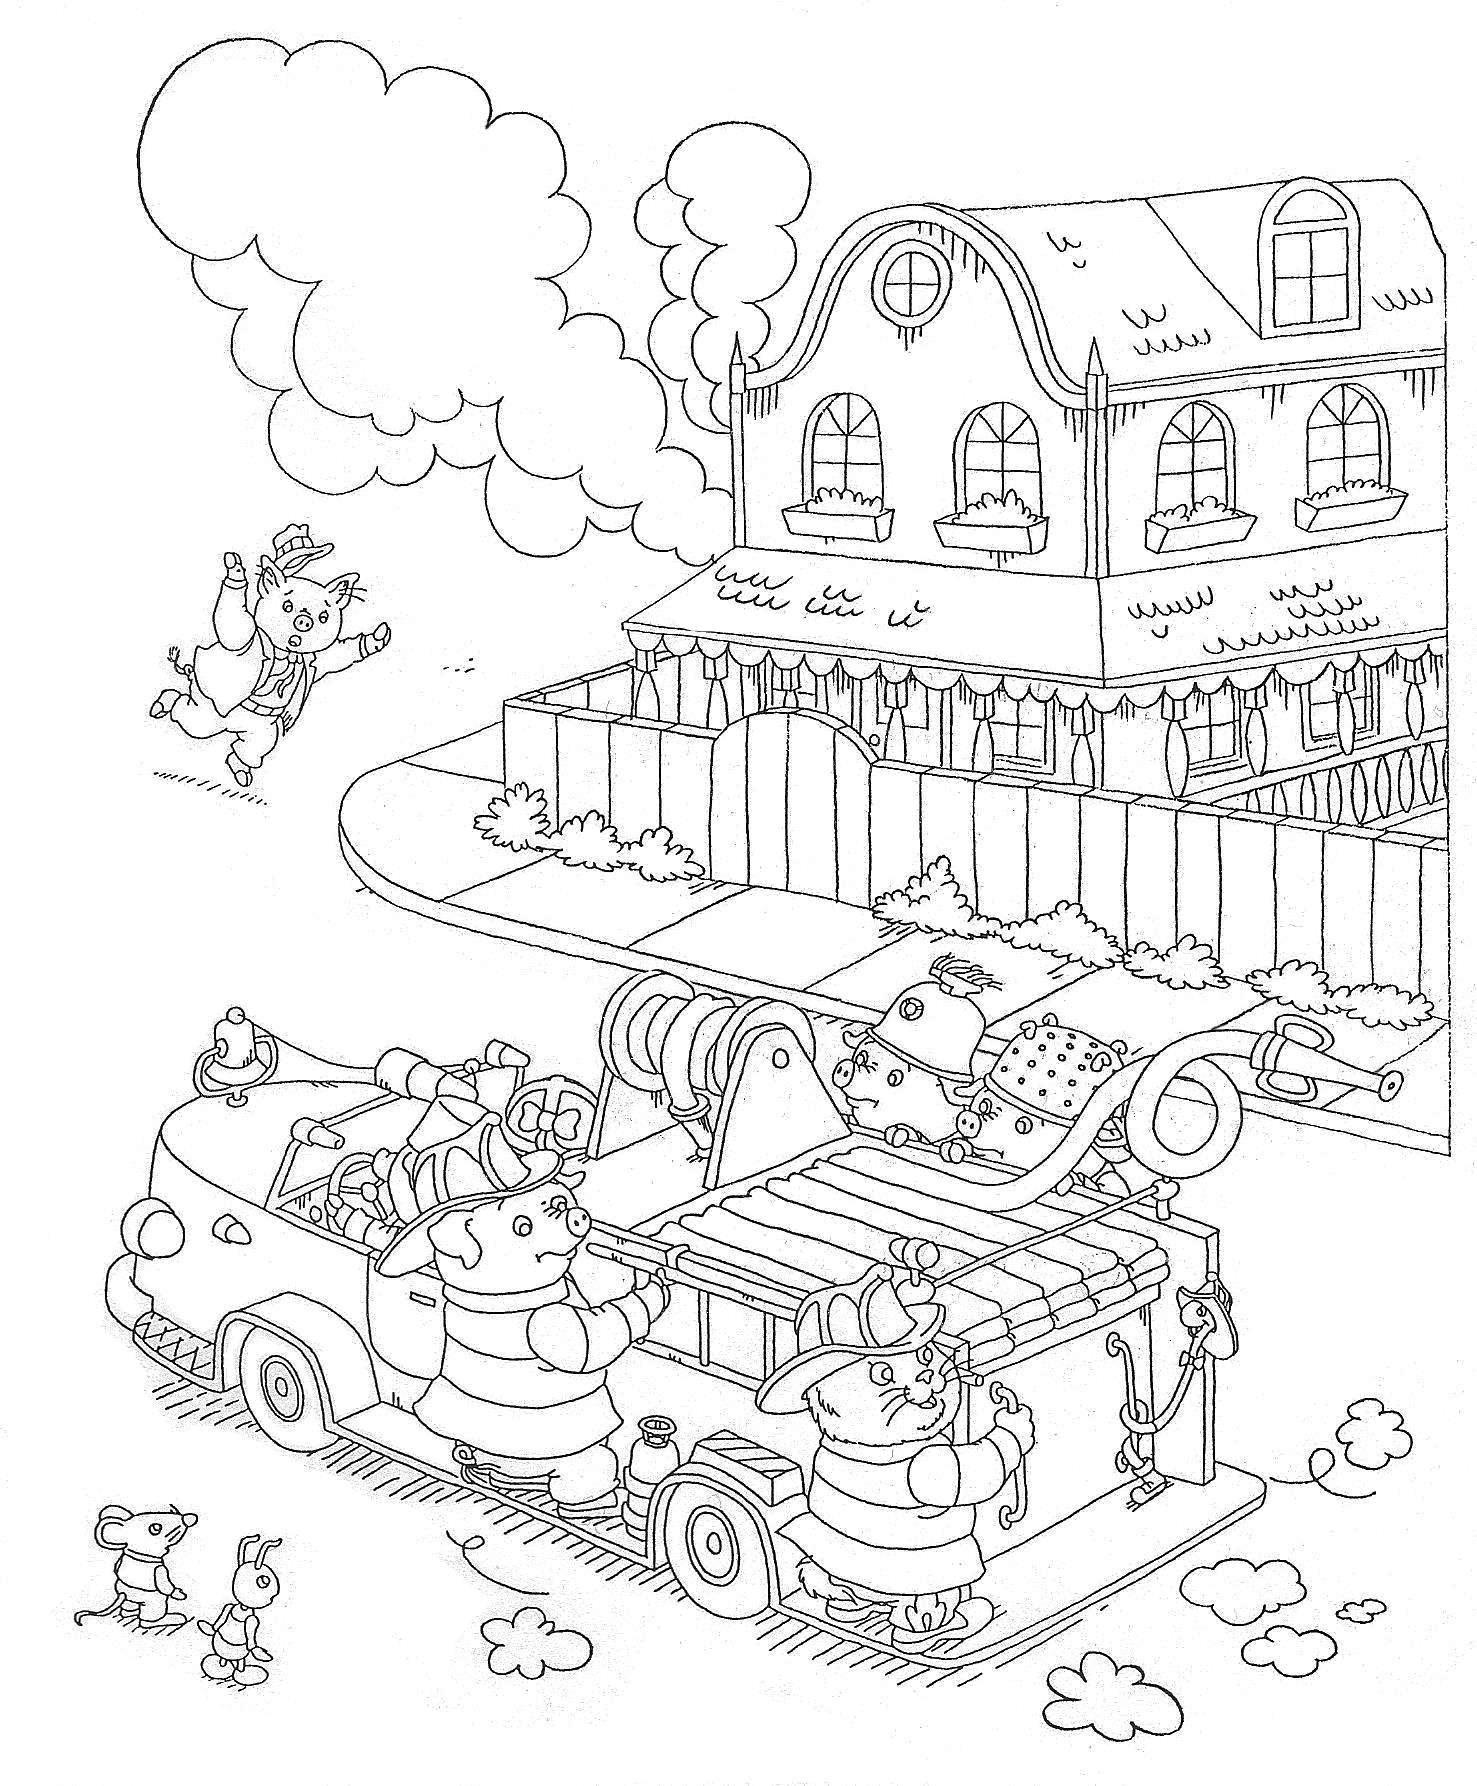 Coloring Pages On Pinterest Coloring Pages Christmas Richard Scarry Coloring Pages